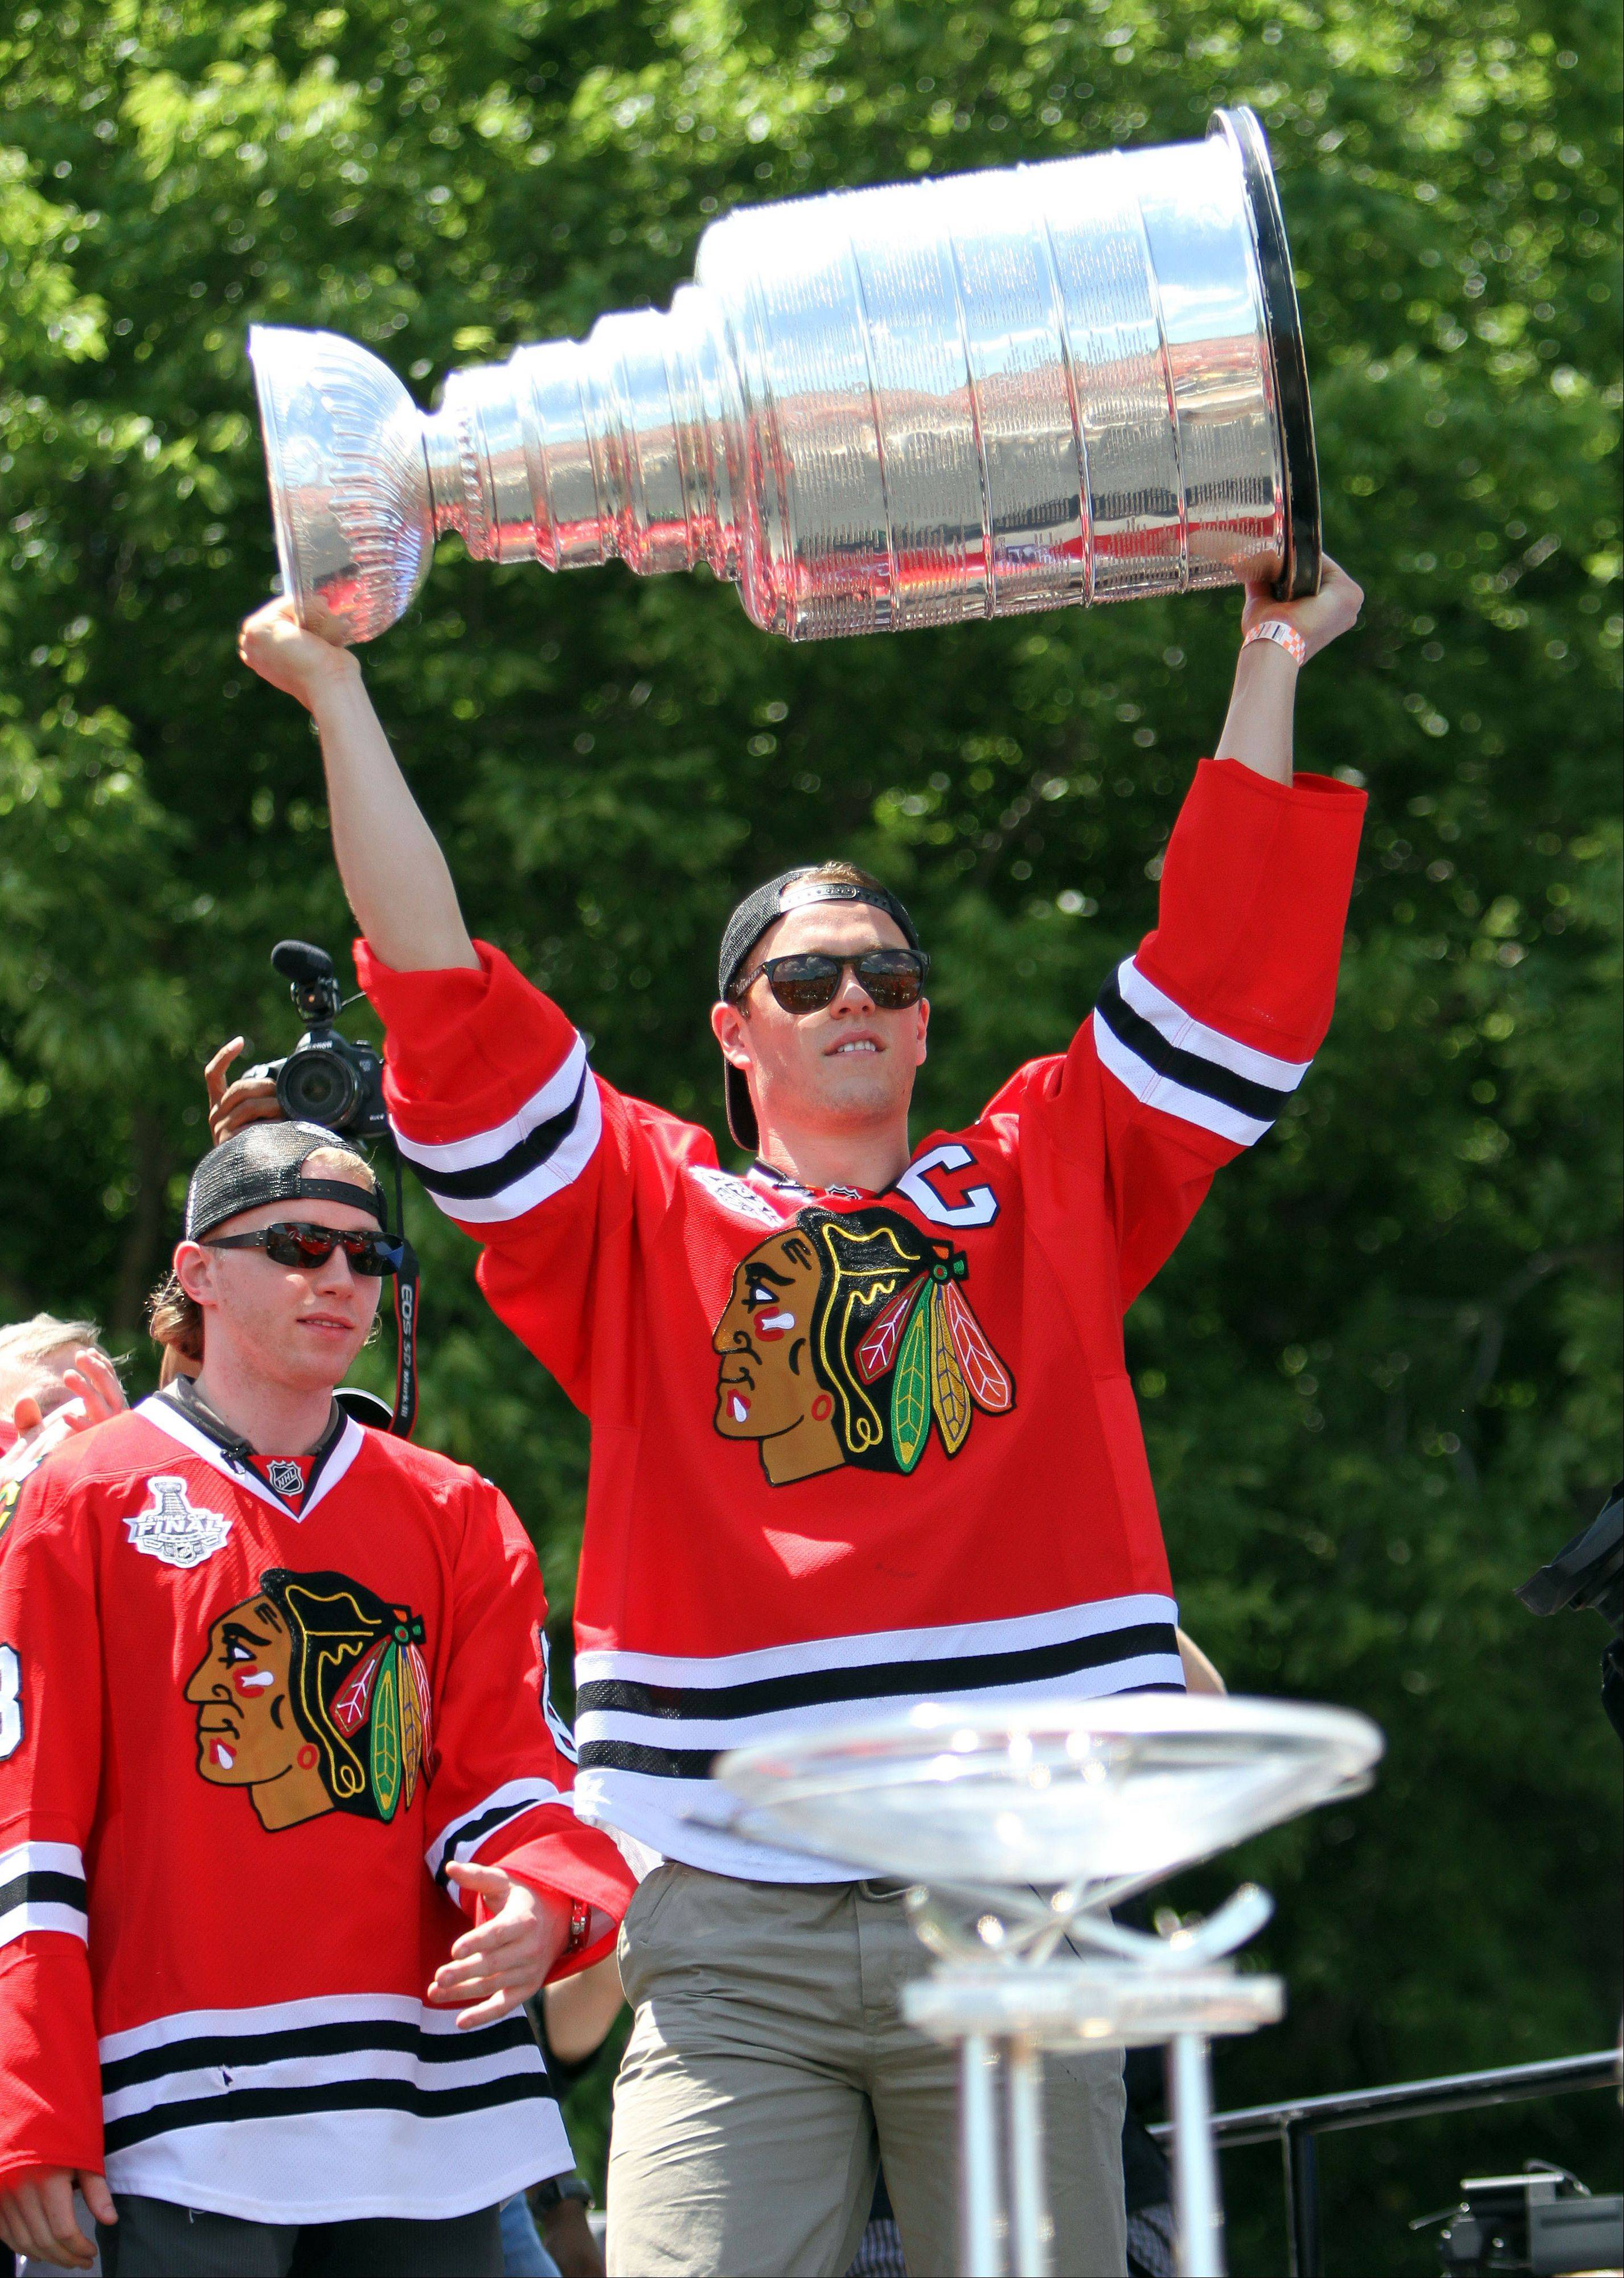 Steve Lundy/slundy@dailyherald.com Chicago Blackhawks center Jonathan Toews carries in the Stanley Cup during the Blackhawks Stanley Cup rally at Hutchinson Field in Chicago Friday morning.